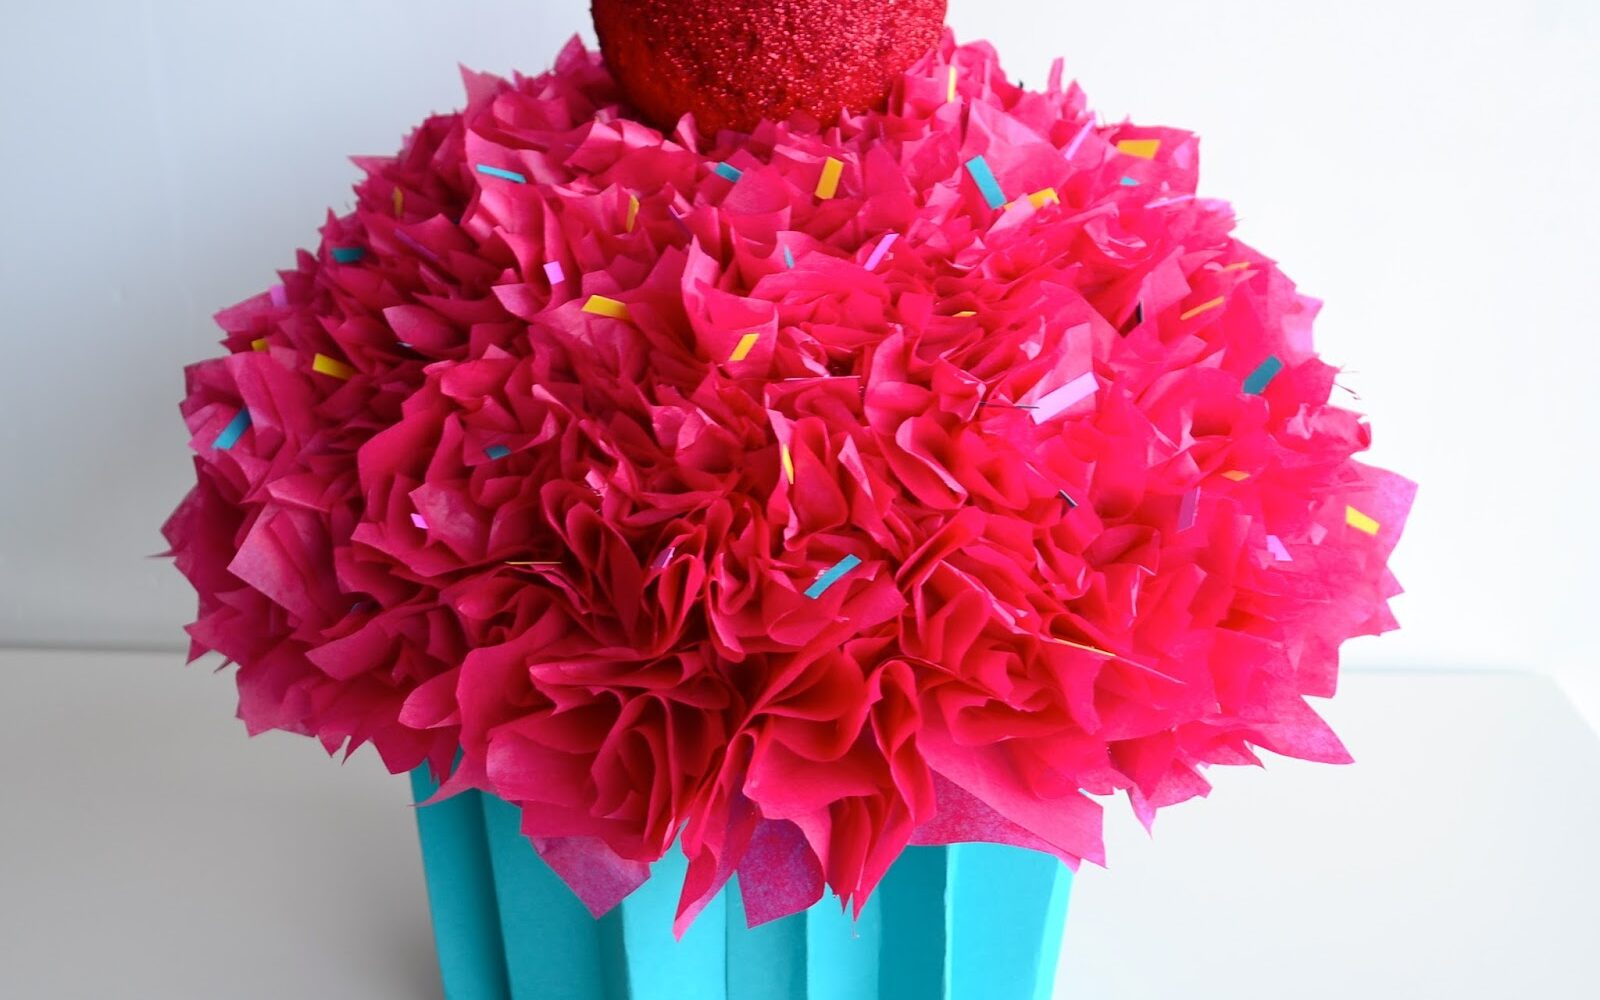 Bright pink Valentine's Day box cupcake with fluffy paper icing | The Dating Divas